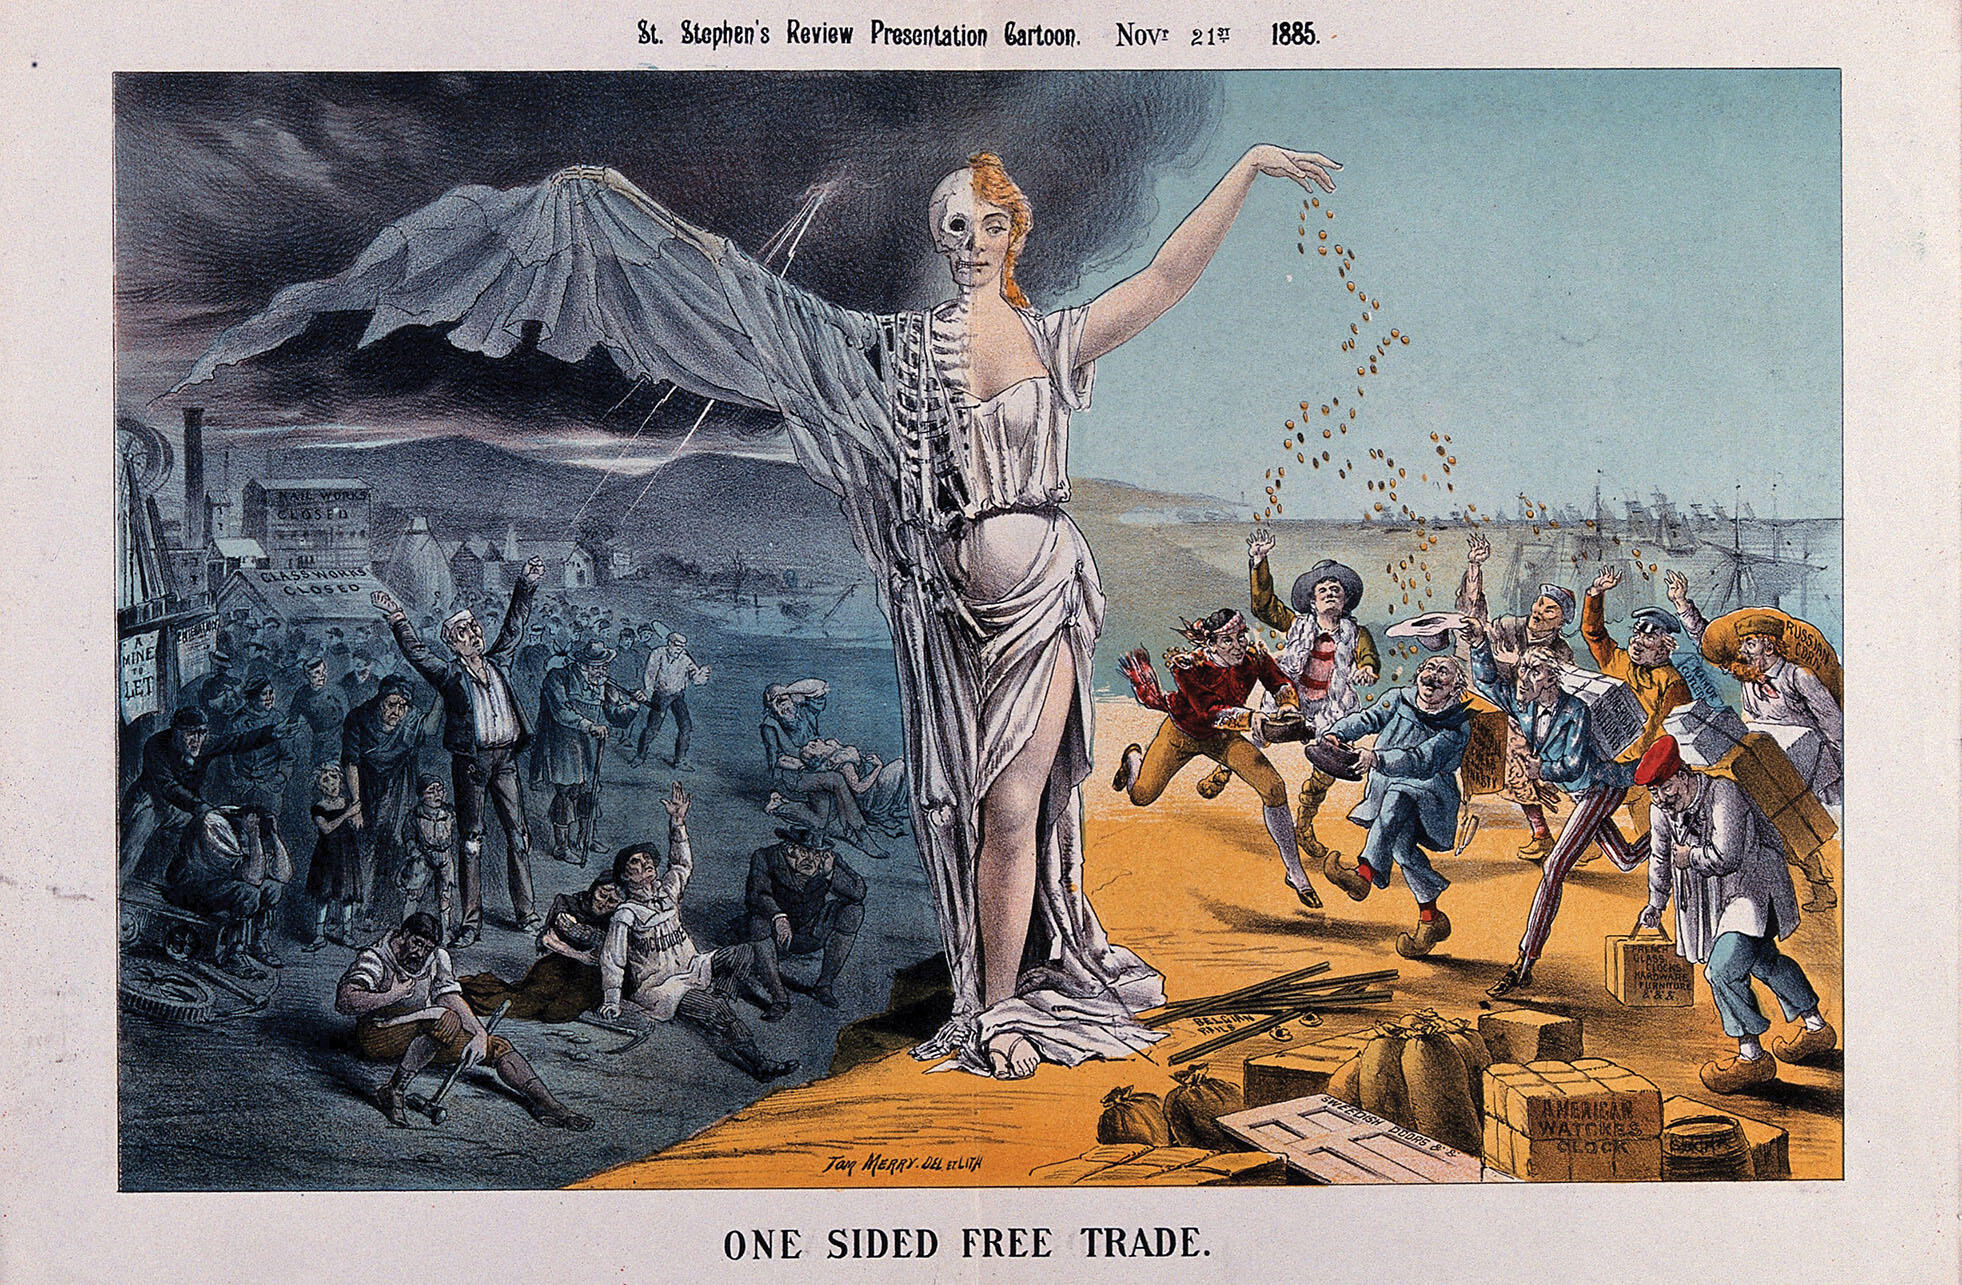 A half-woman half-skeleton figure presides as jobless English workers suffer as merchants are made rich by free trade in this cartoon from 1885. (Image courtesy of the Wellcome Library/Wikimedia.)